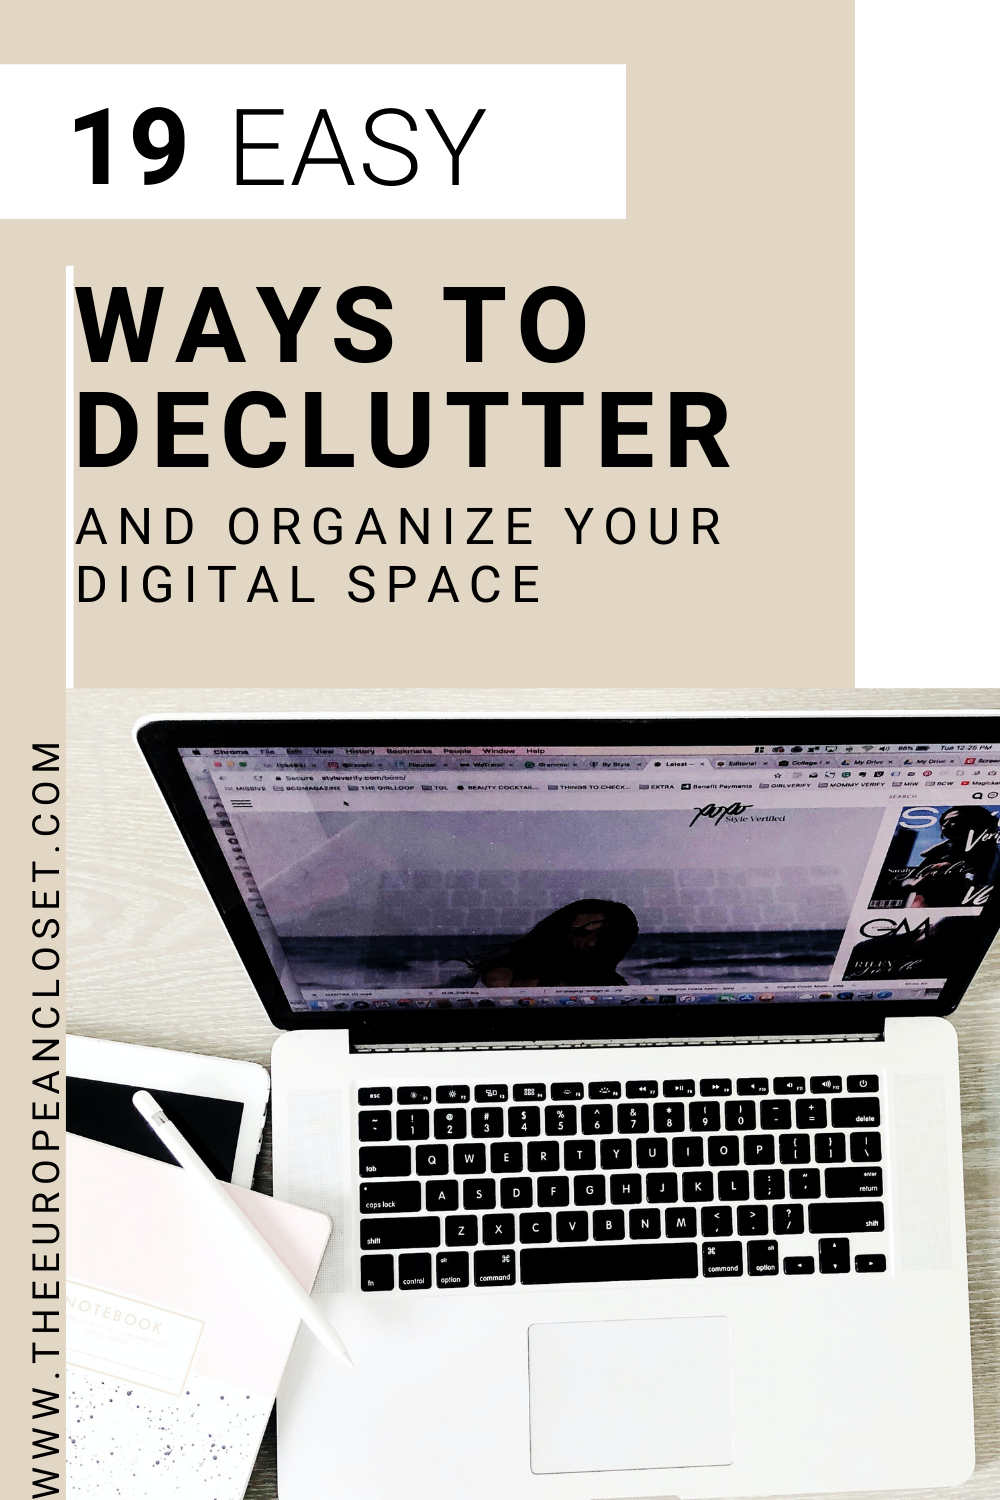 Living in a digital era, it's imperative that we clean our digital space as often as we do our physical one. Today's post is all about that.